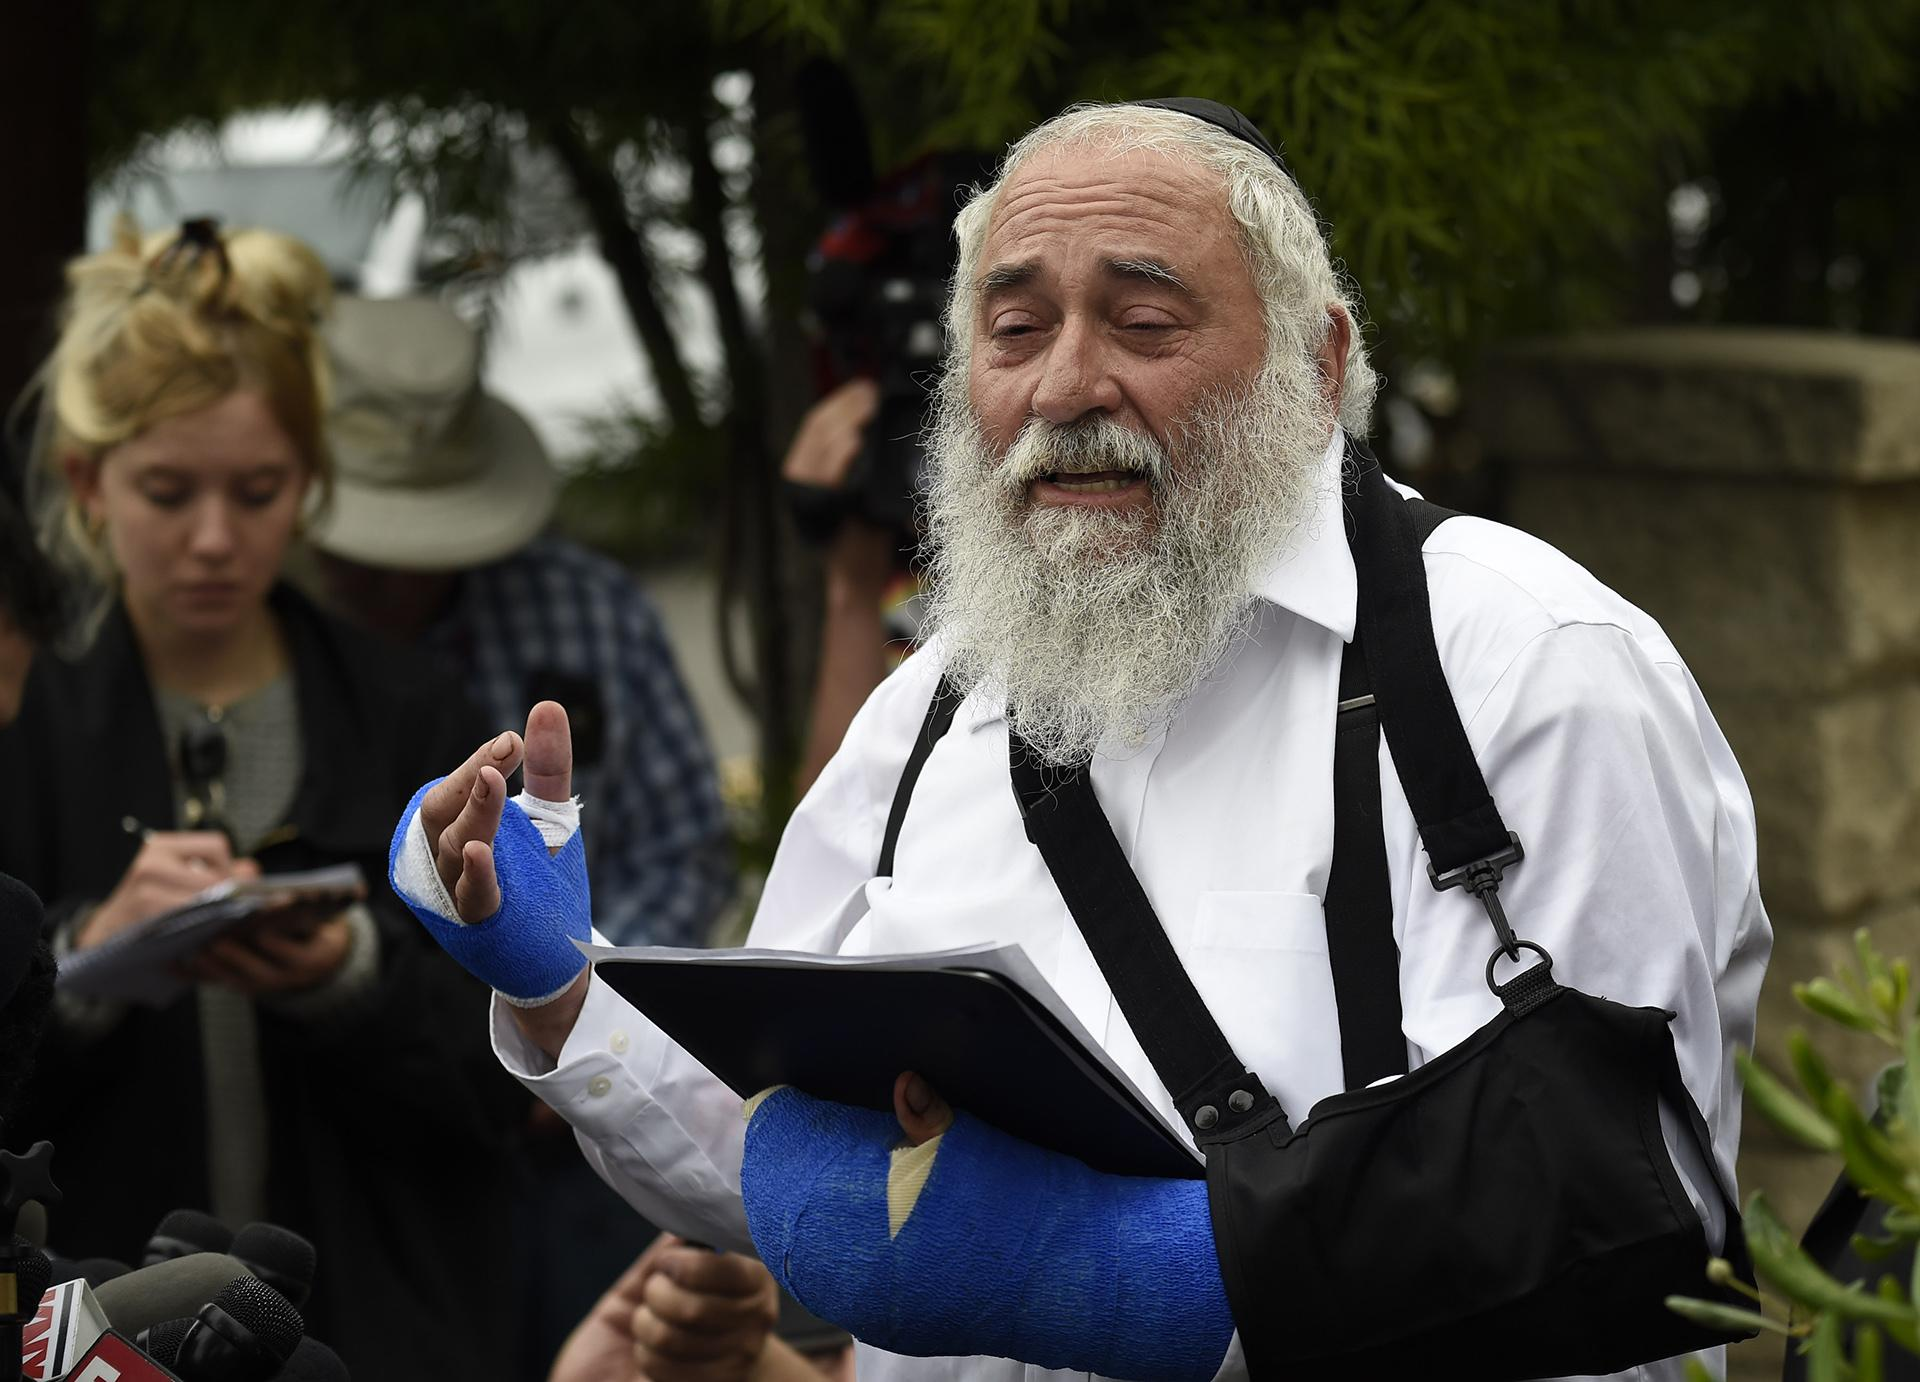 Rabbi Yisroel Goldstein speaks at a news conference at the Chabad of Poway synagogue, Sunday, April 28, 2019, in Poway, California. (AP Photo / Denis Poroy)